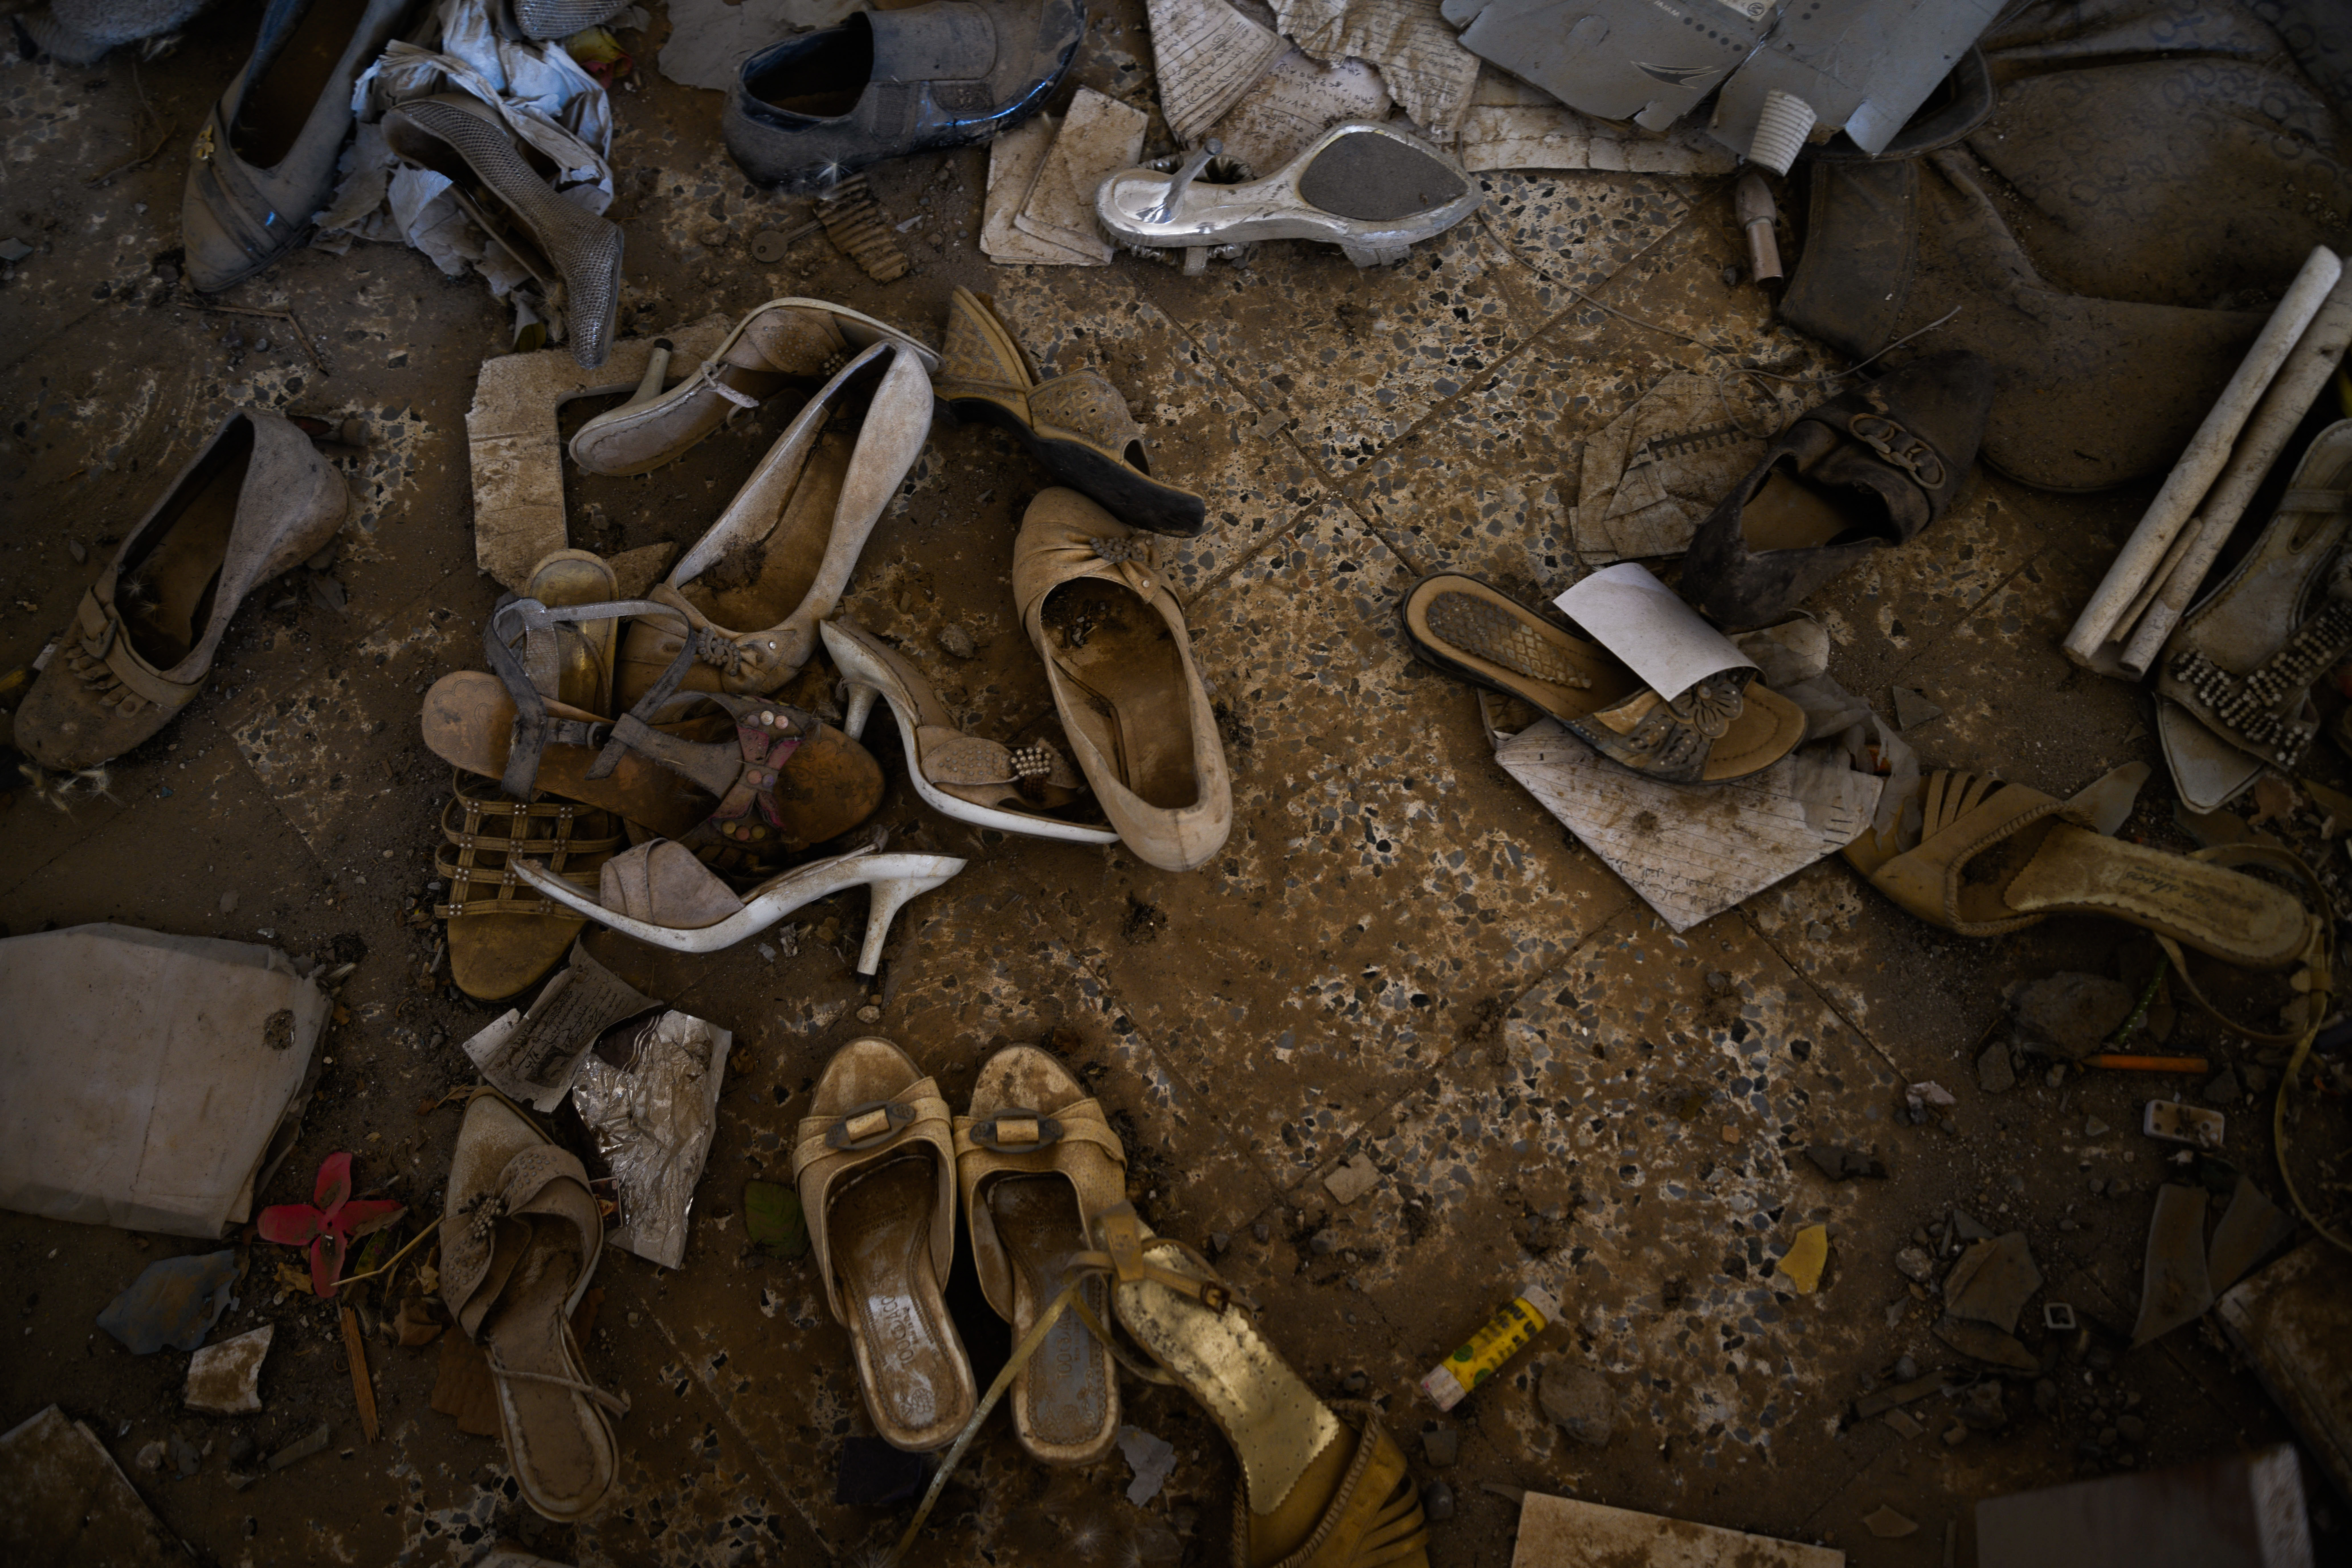 Shoes and debris leftover from an ISIS attack on a Christian village in northern Iraq